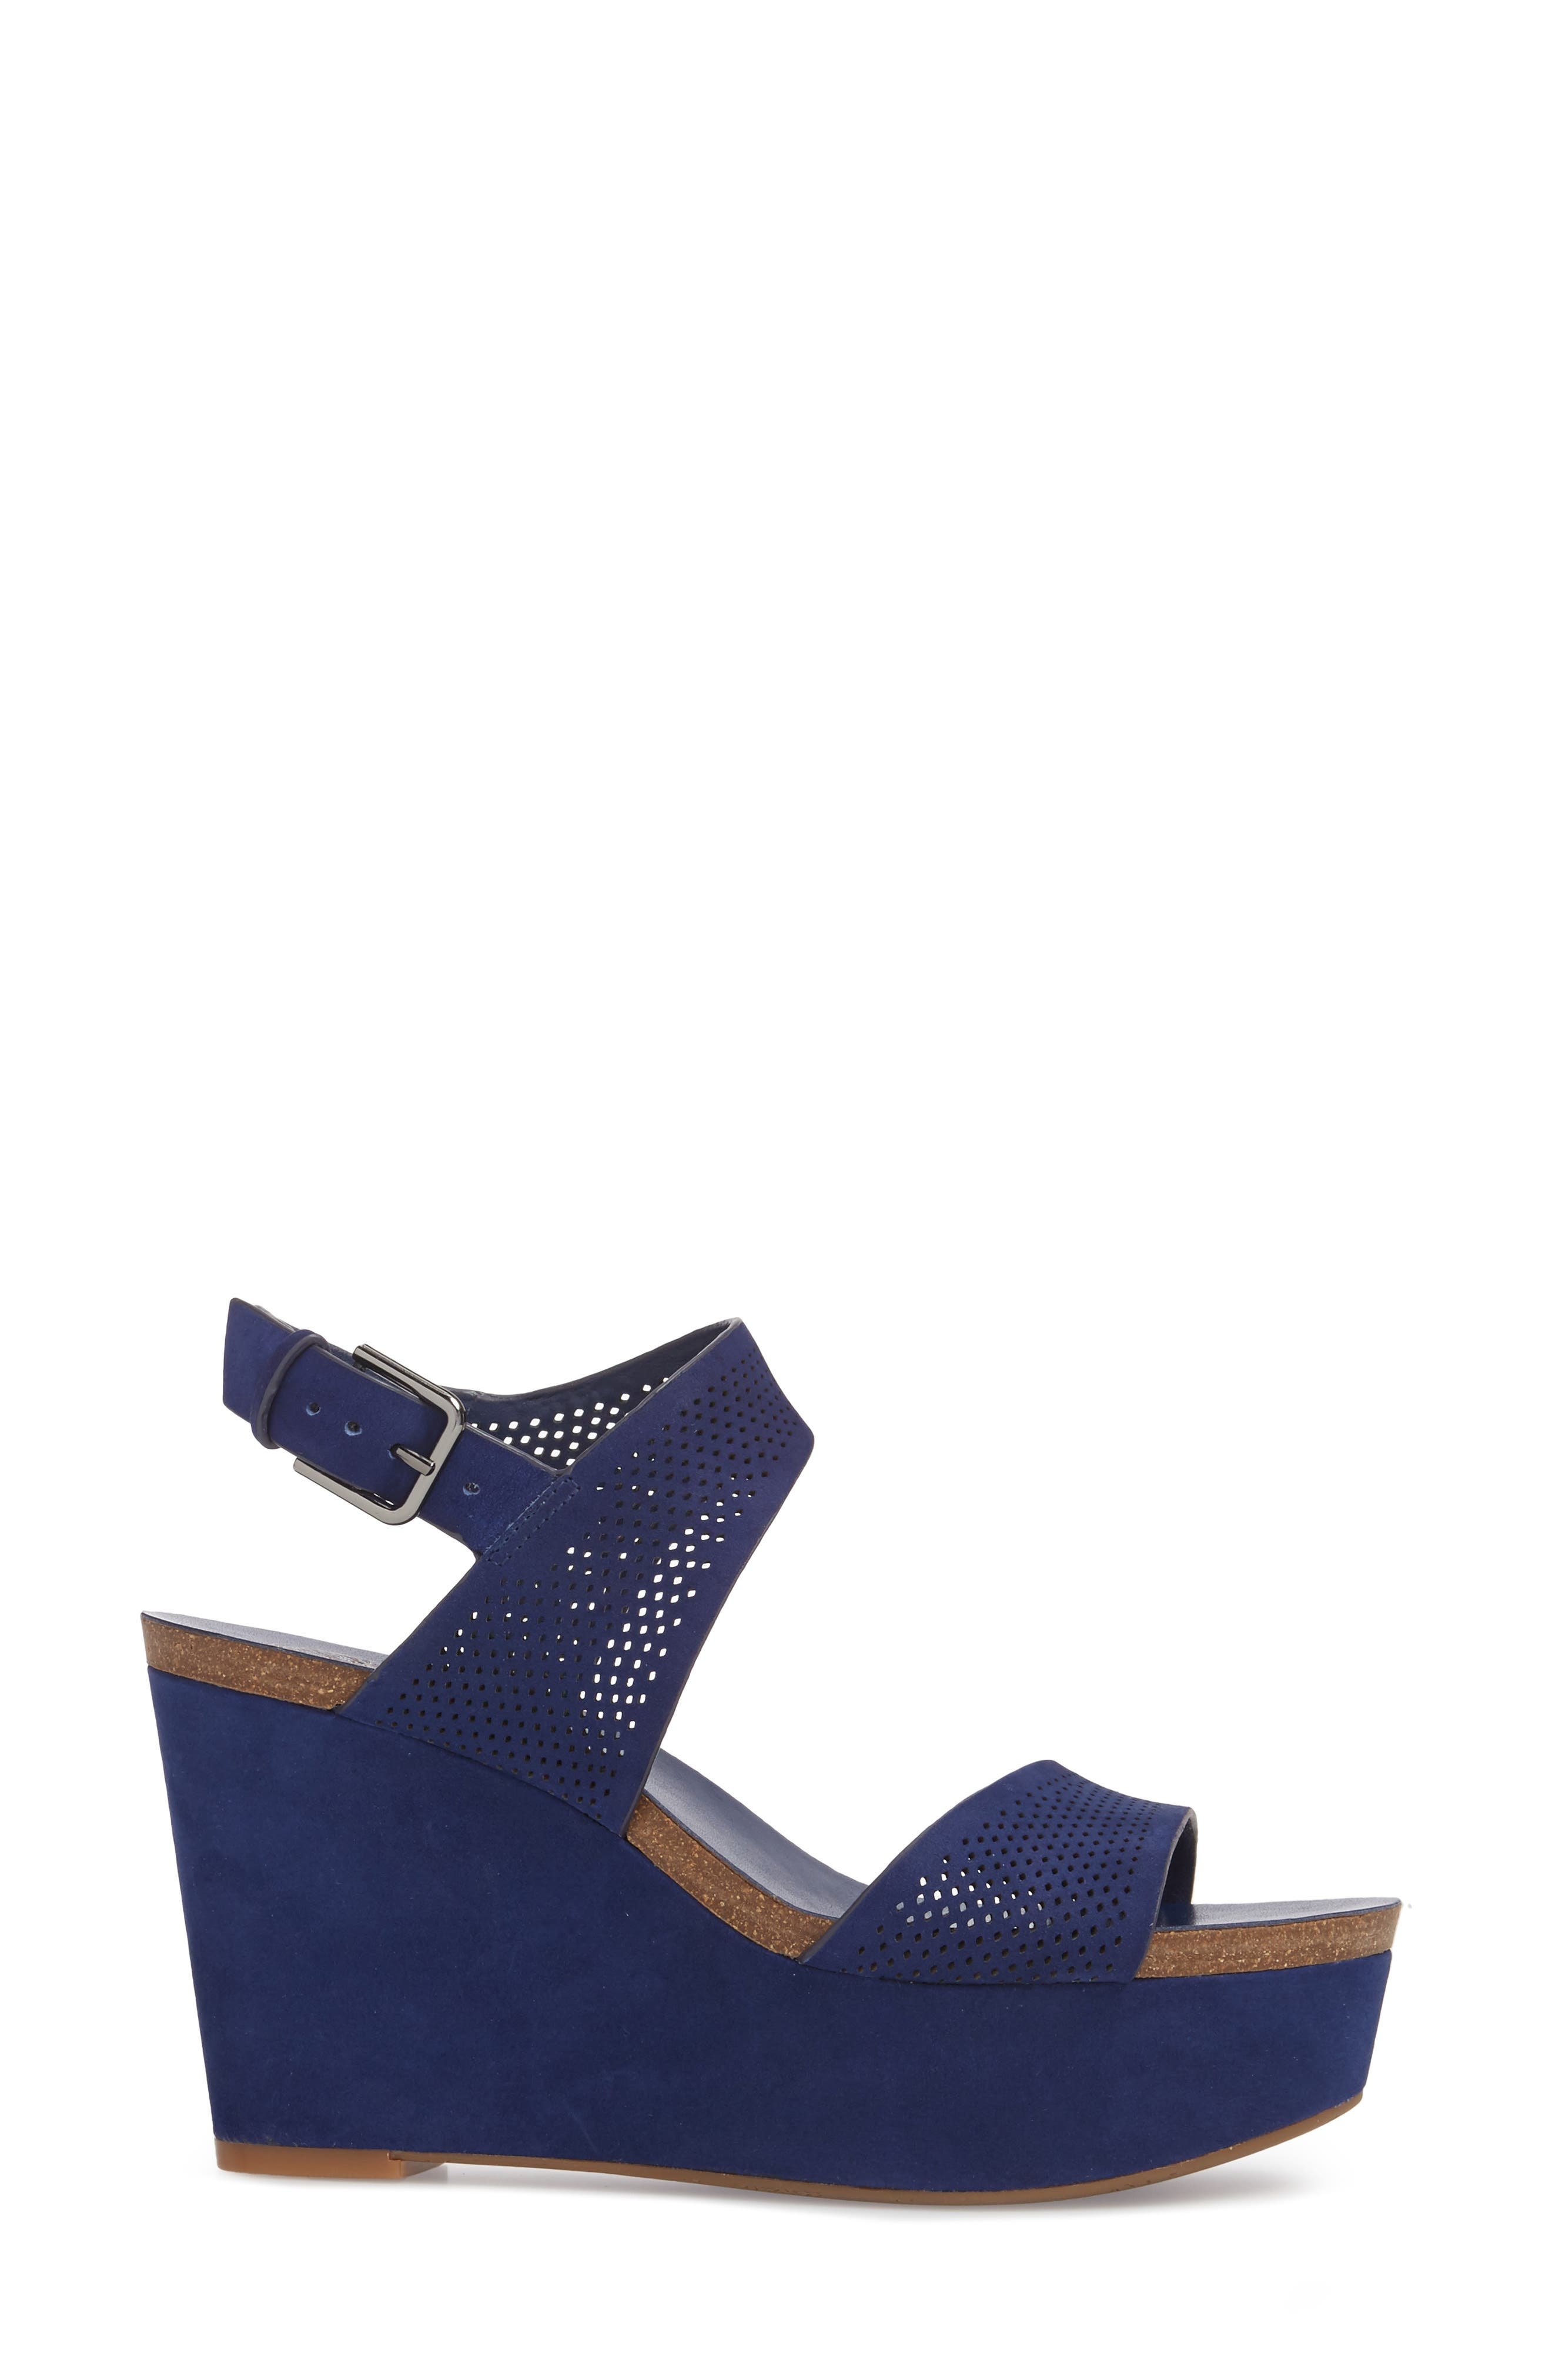 Vessinta Platform Wedge,                             Alternate thumbnail 3, color,                             Moody Blue Leather